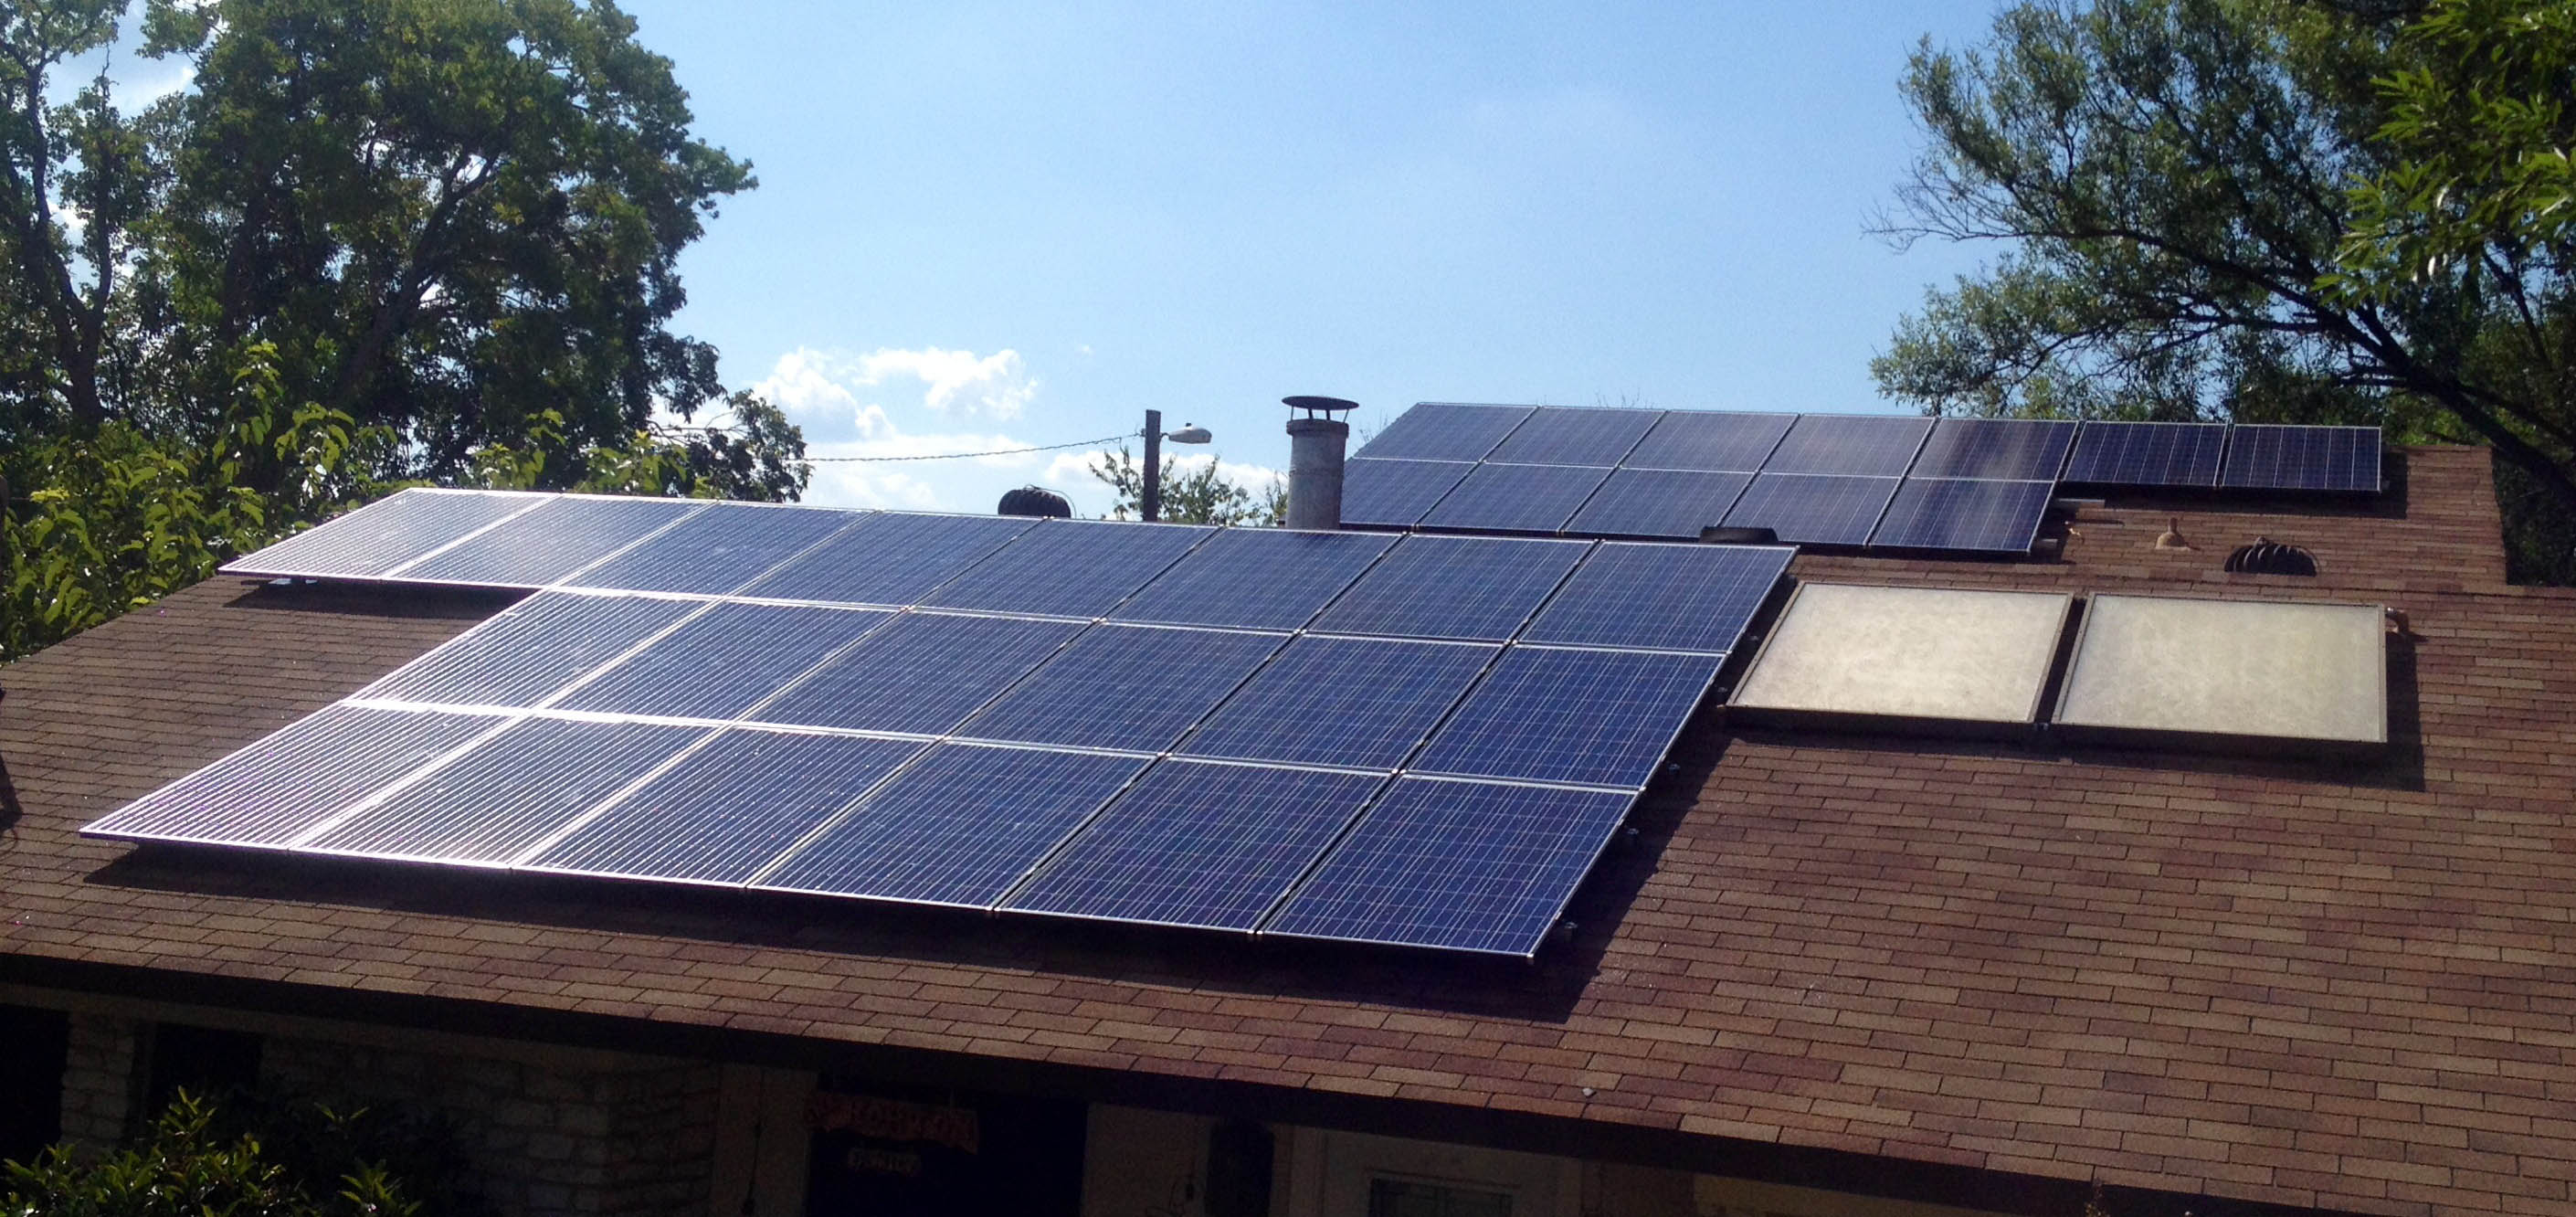 Turner Drive Austin Texas Solar Power System By Native